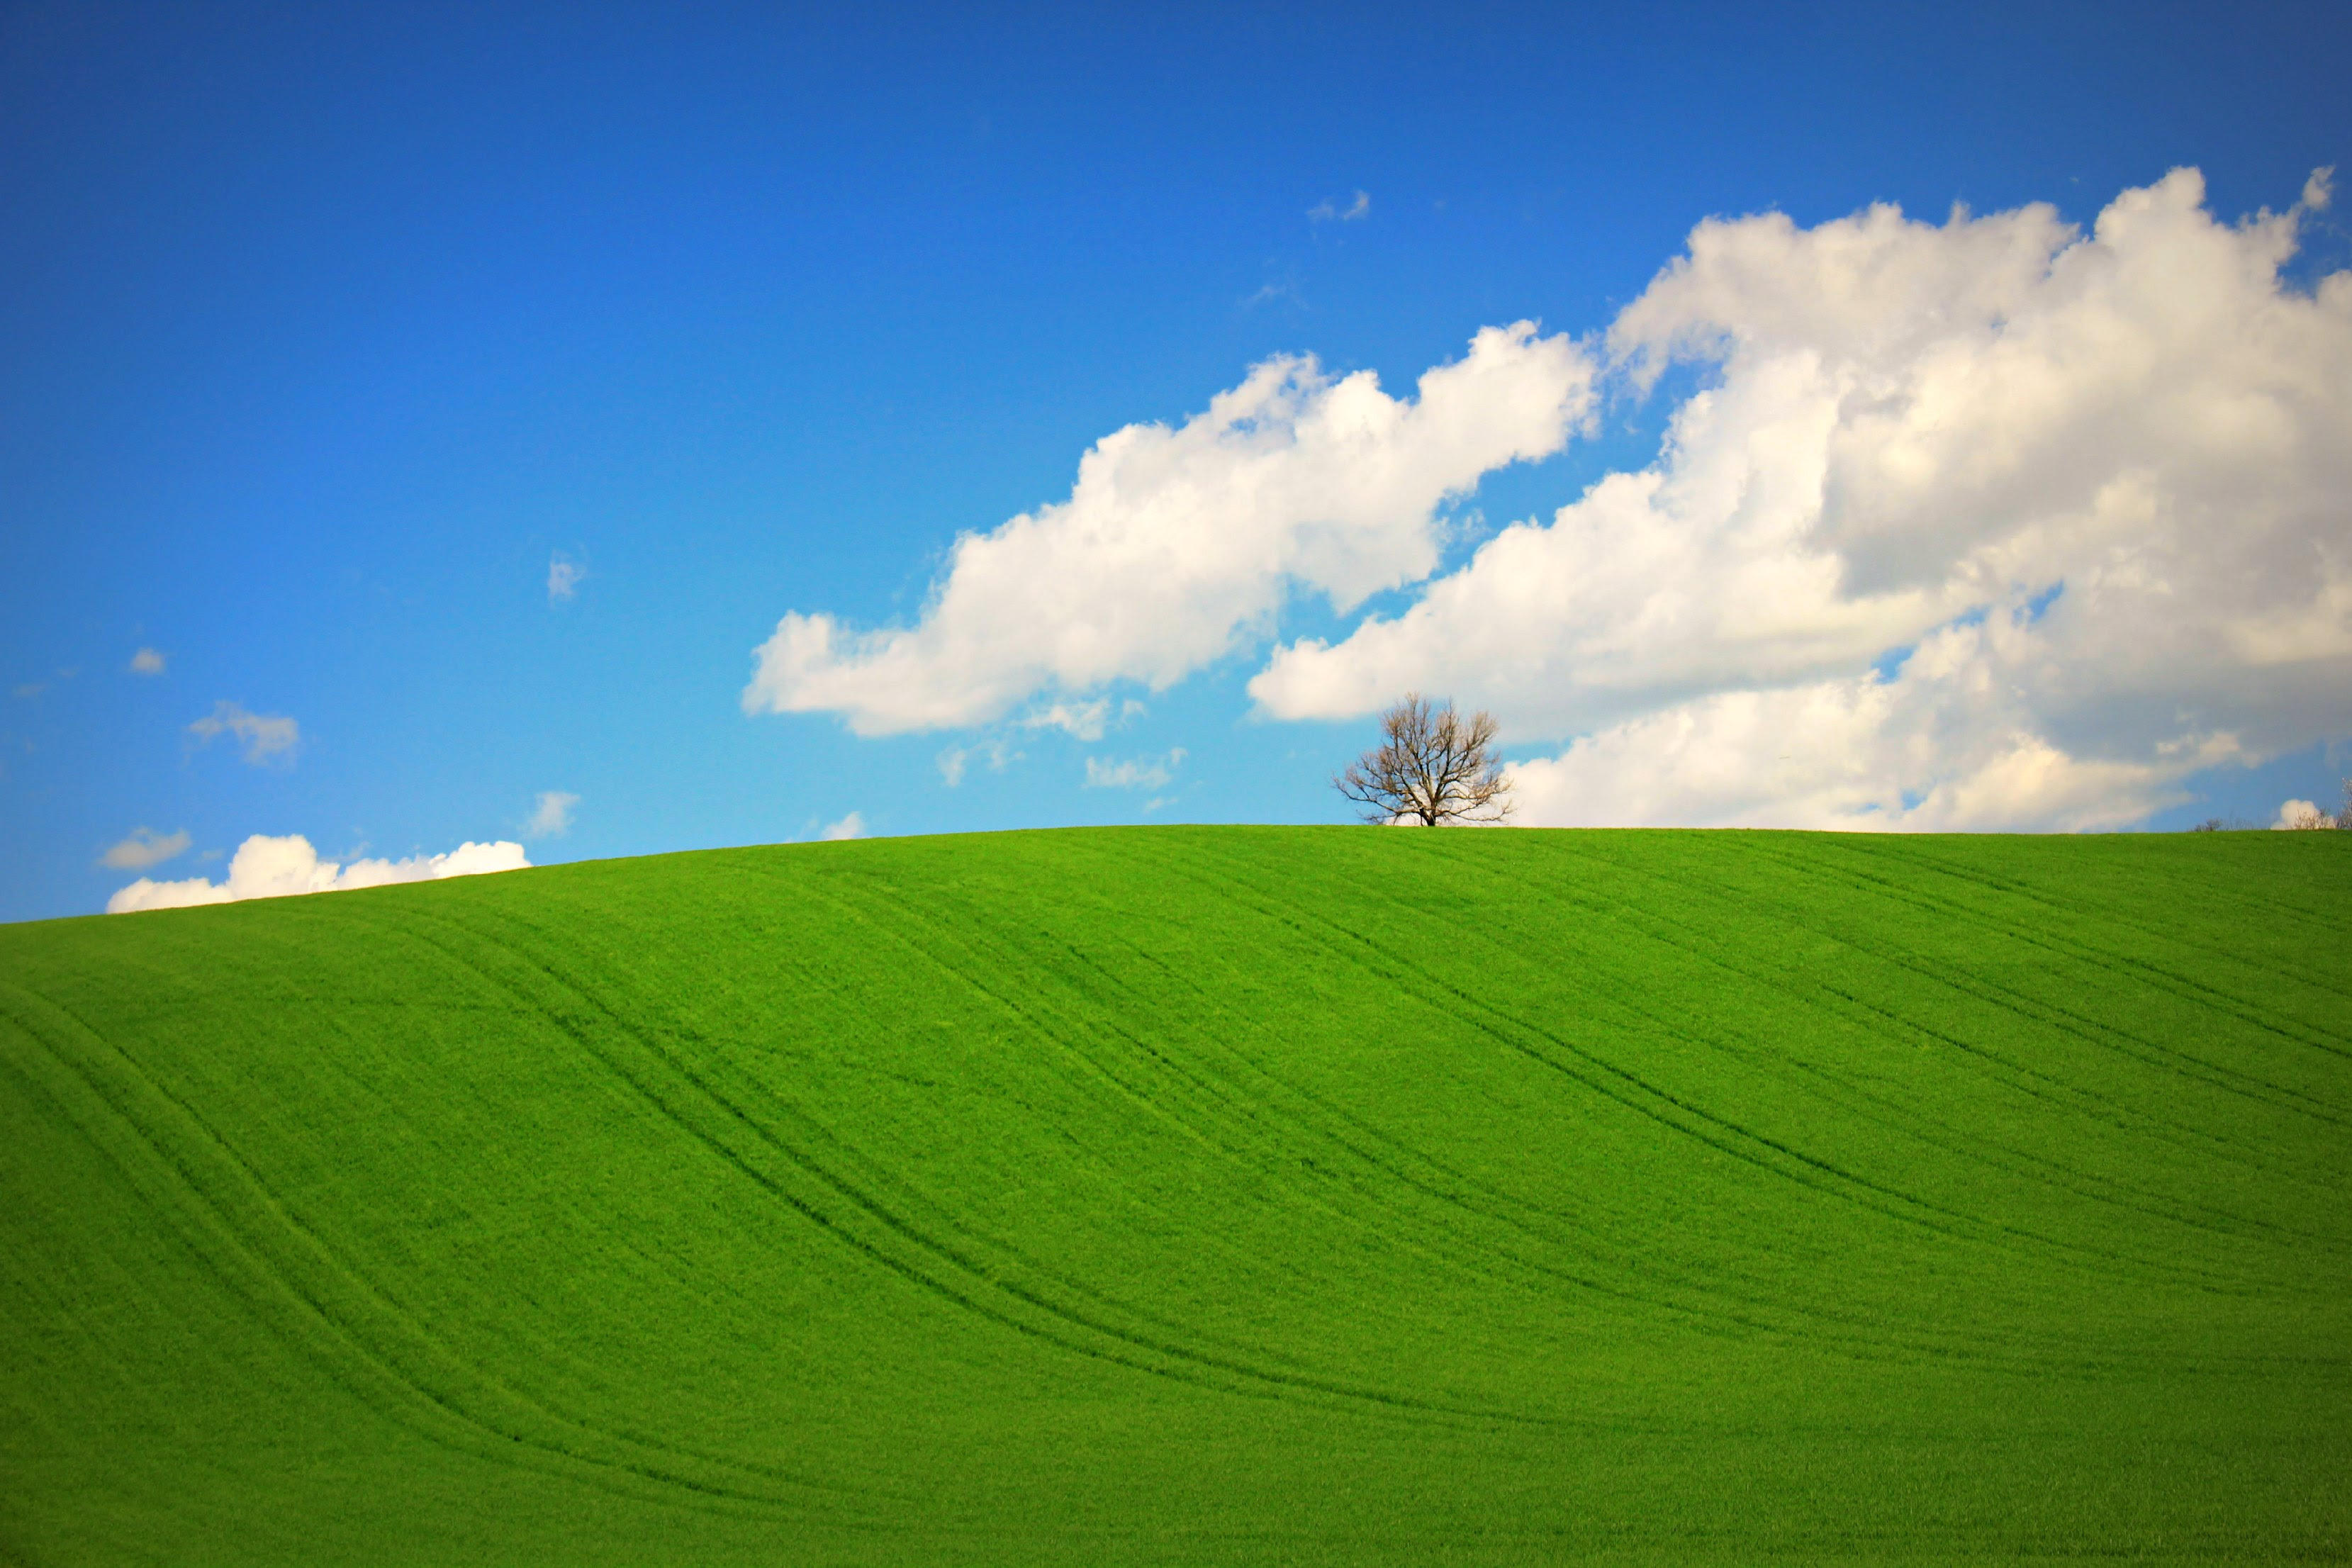 Hermosa Pradera Verde Hd 3318x2212 Imagenes Wallpapers Gratis